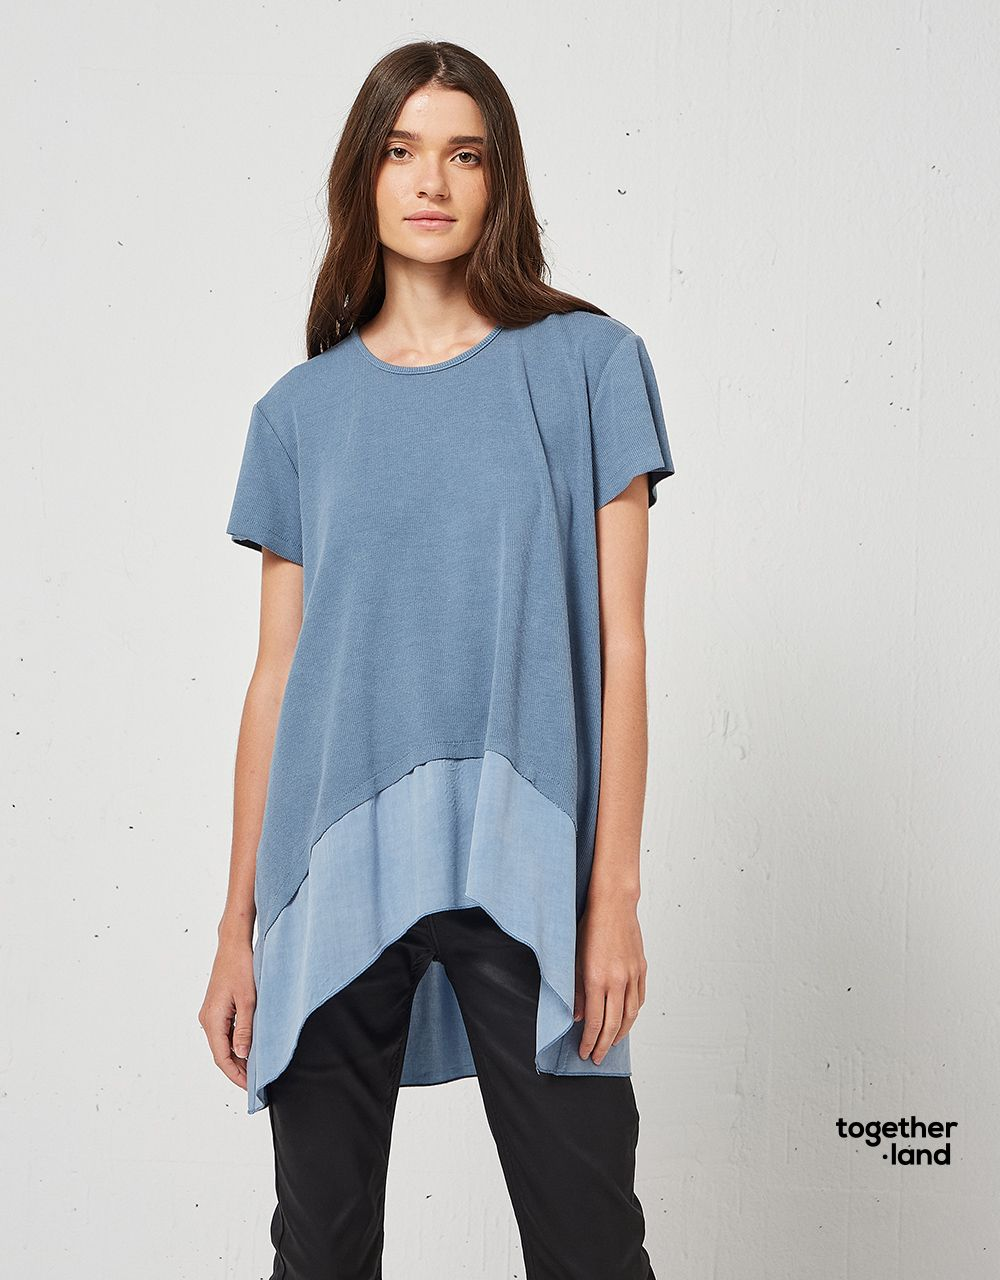 BLOUSE WITH RIB DETAILS - TOGETHERLAND